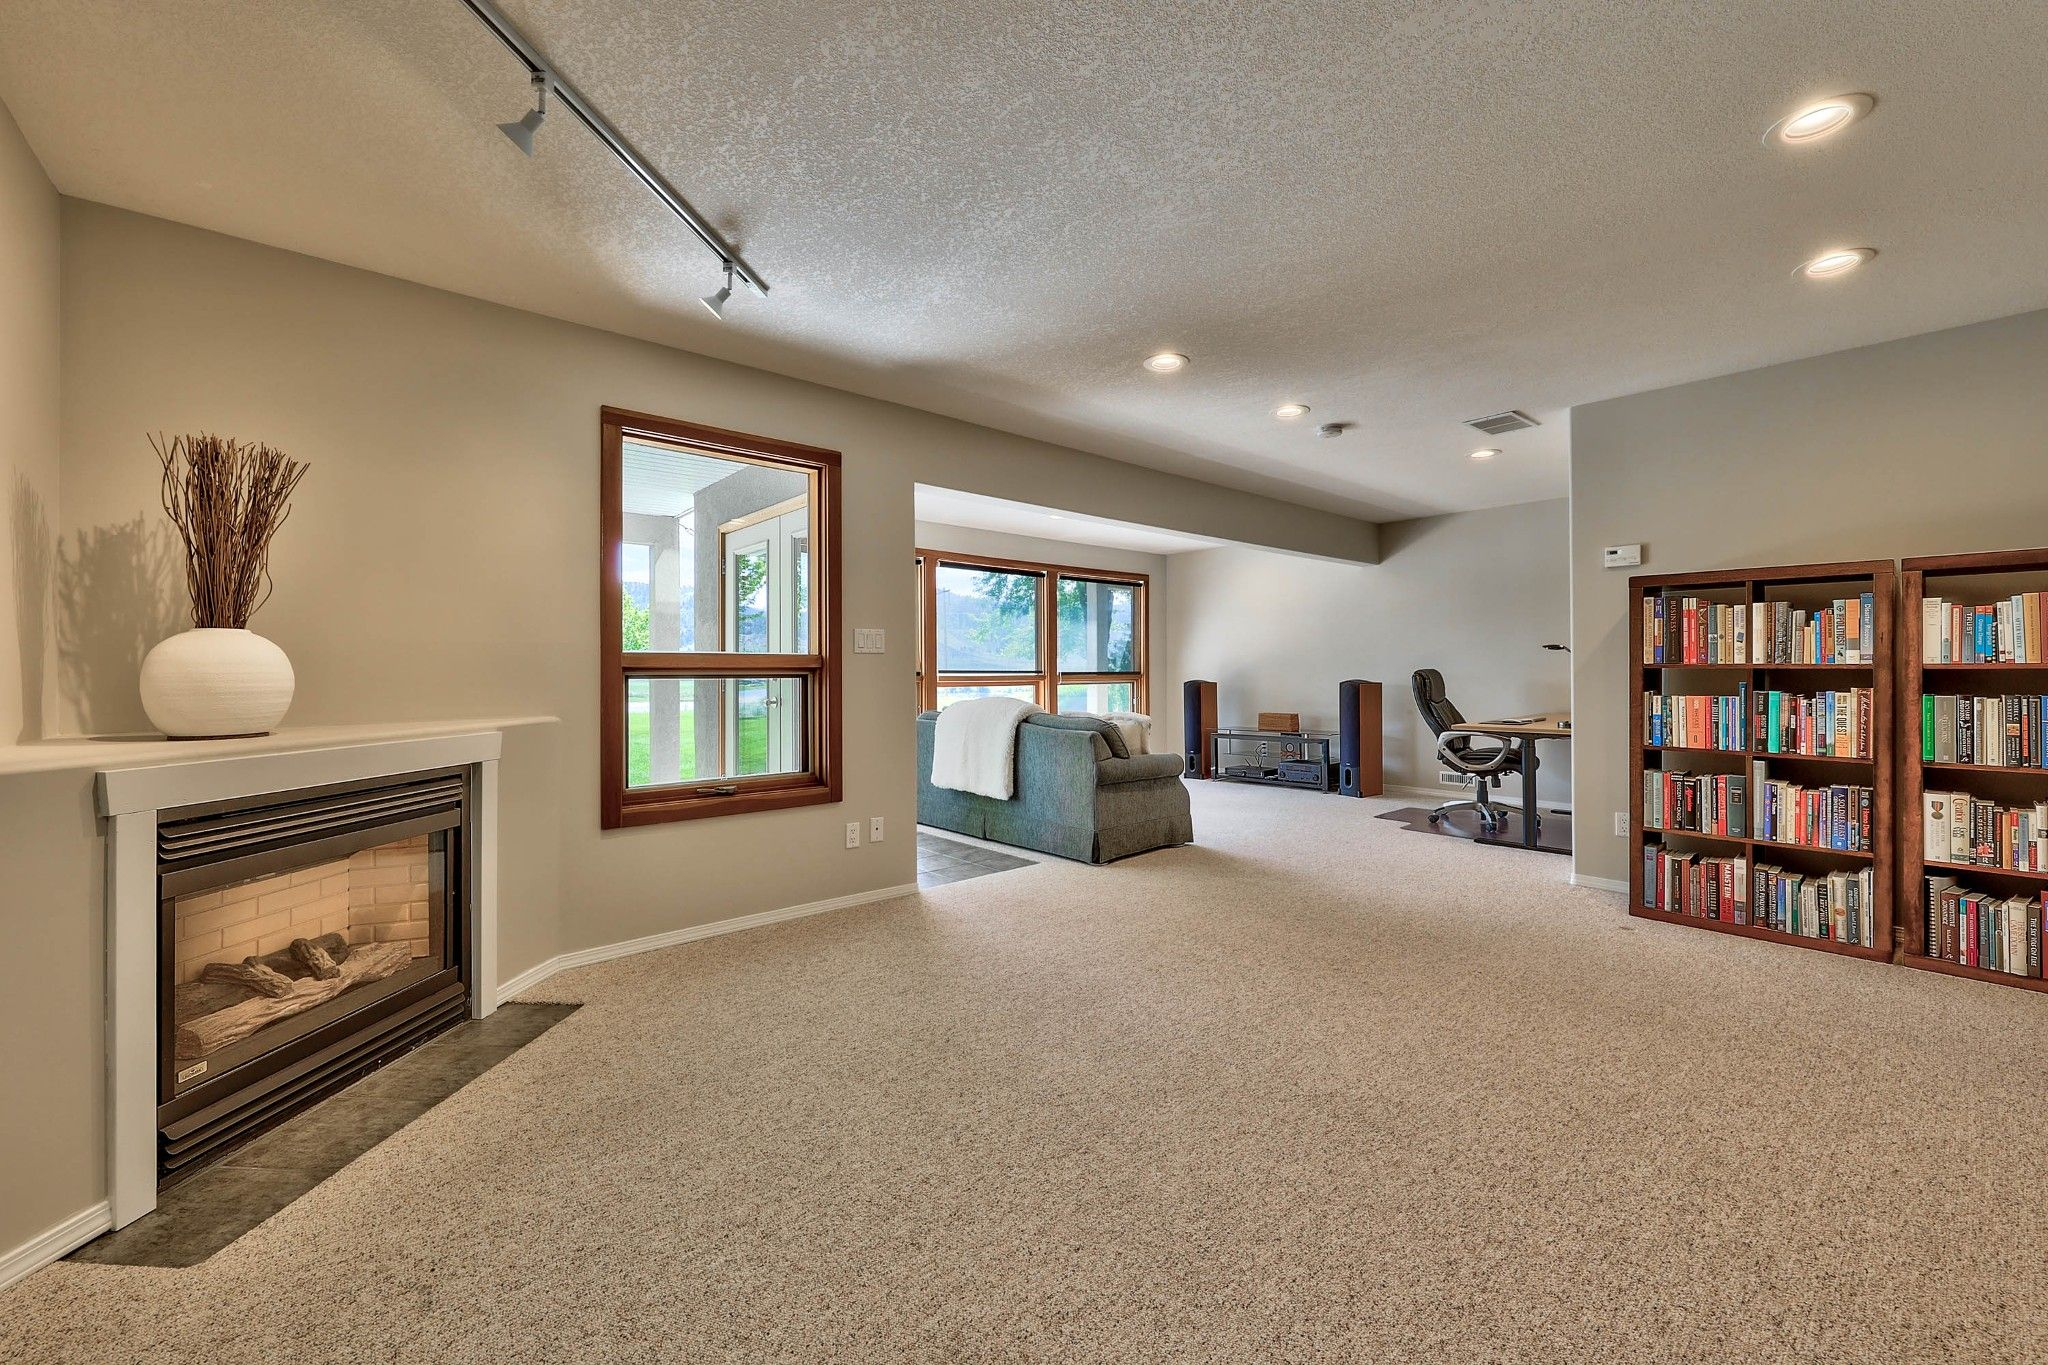 Photo 29: Photos: 3299 E Shuswap Road in Kamloops: South Thompson Valley House for sale : MLS®# 162162